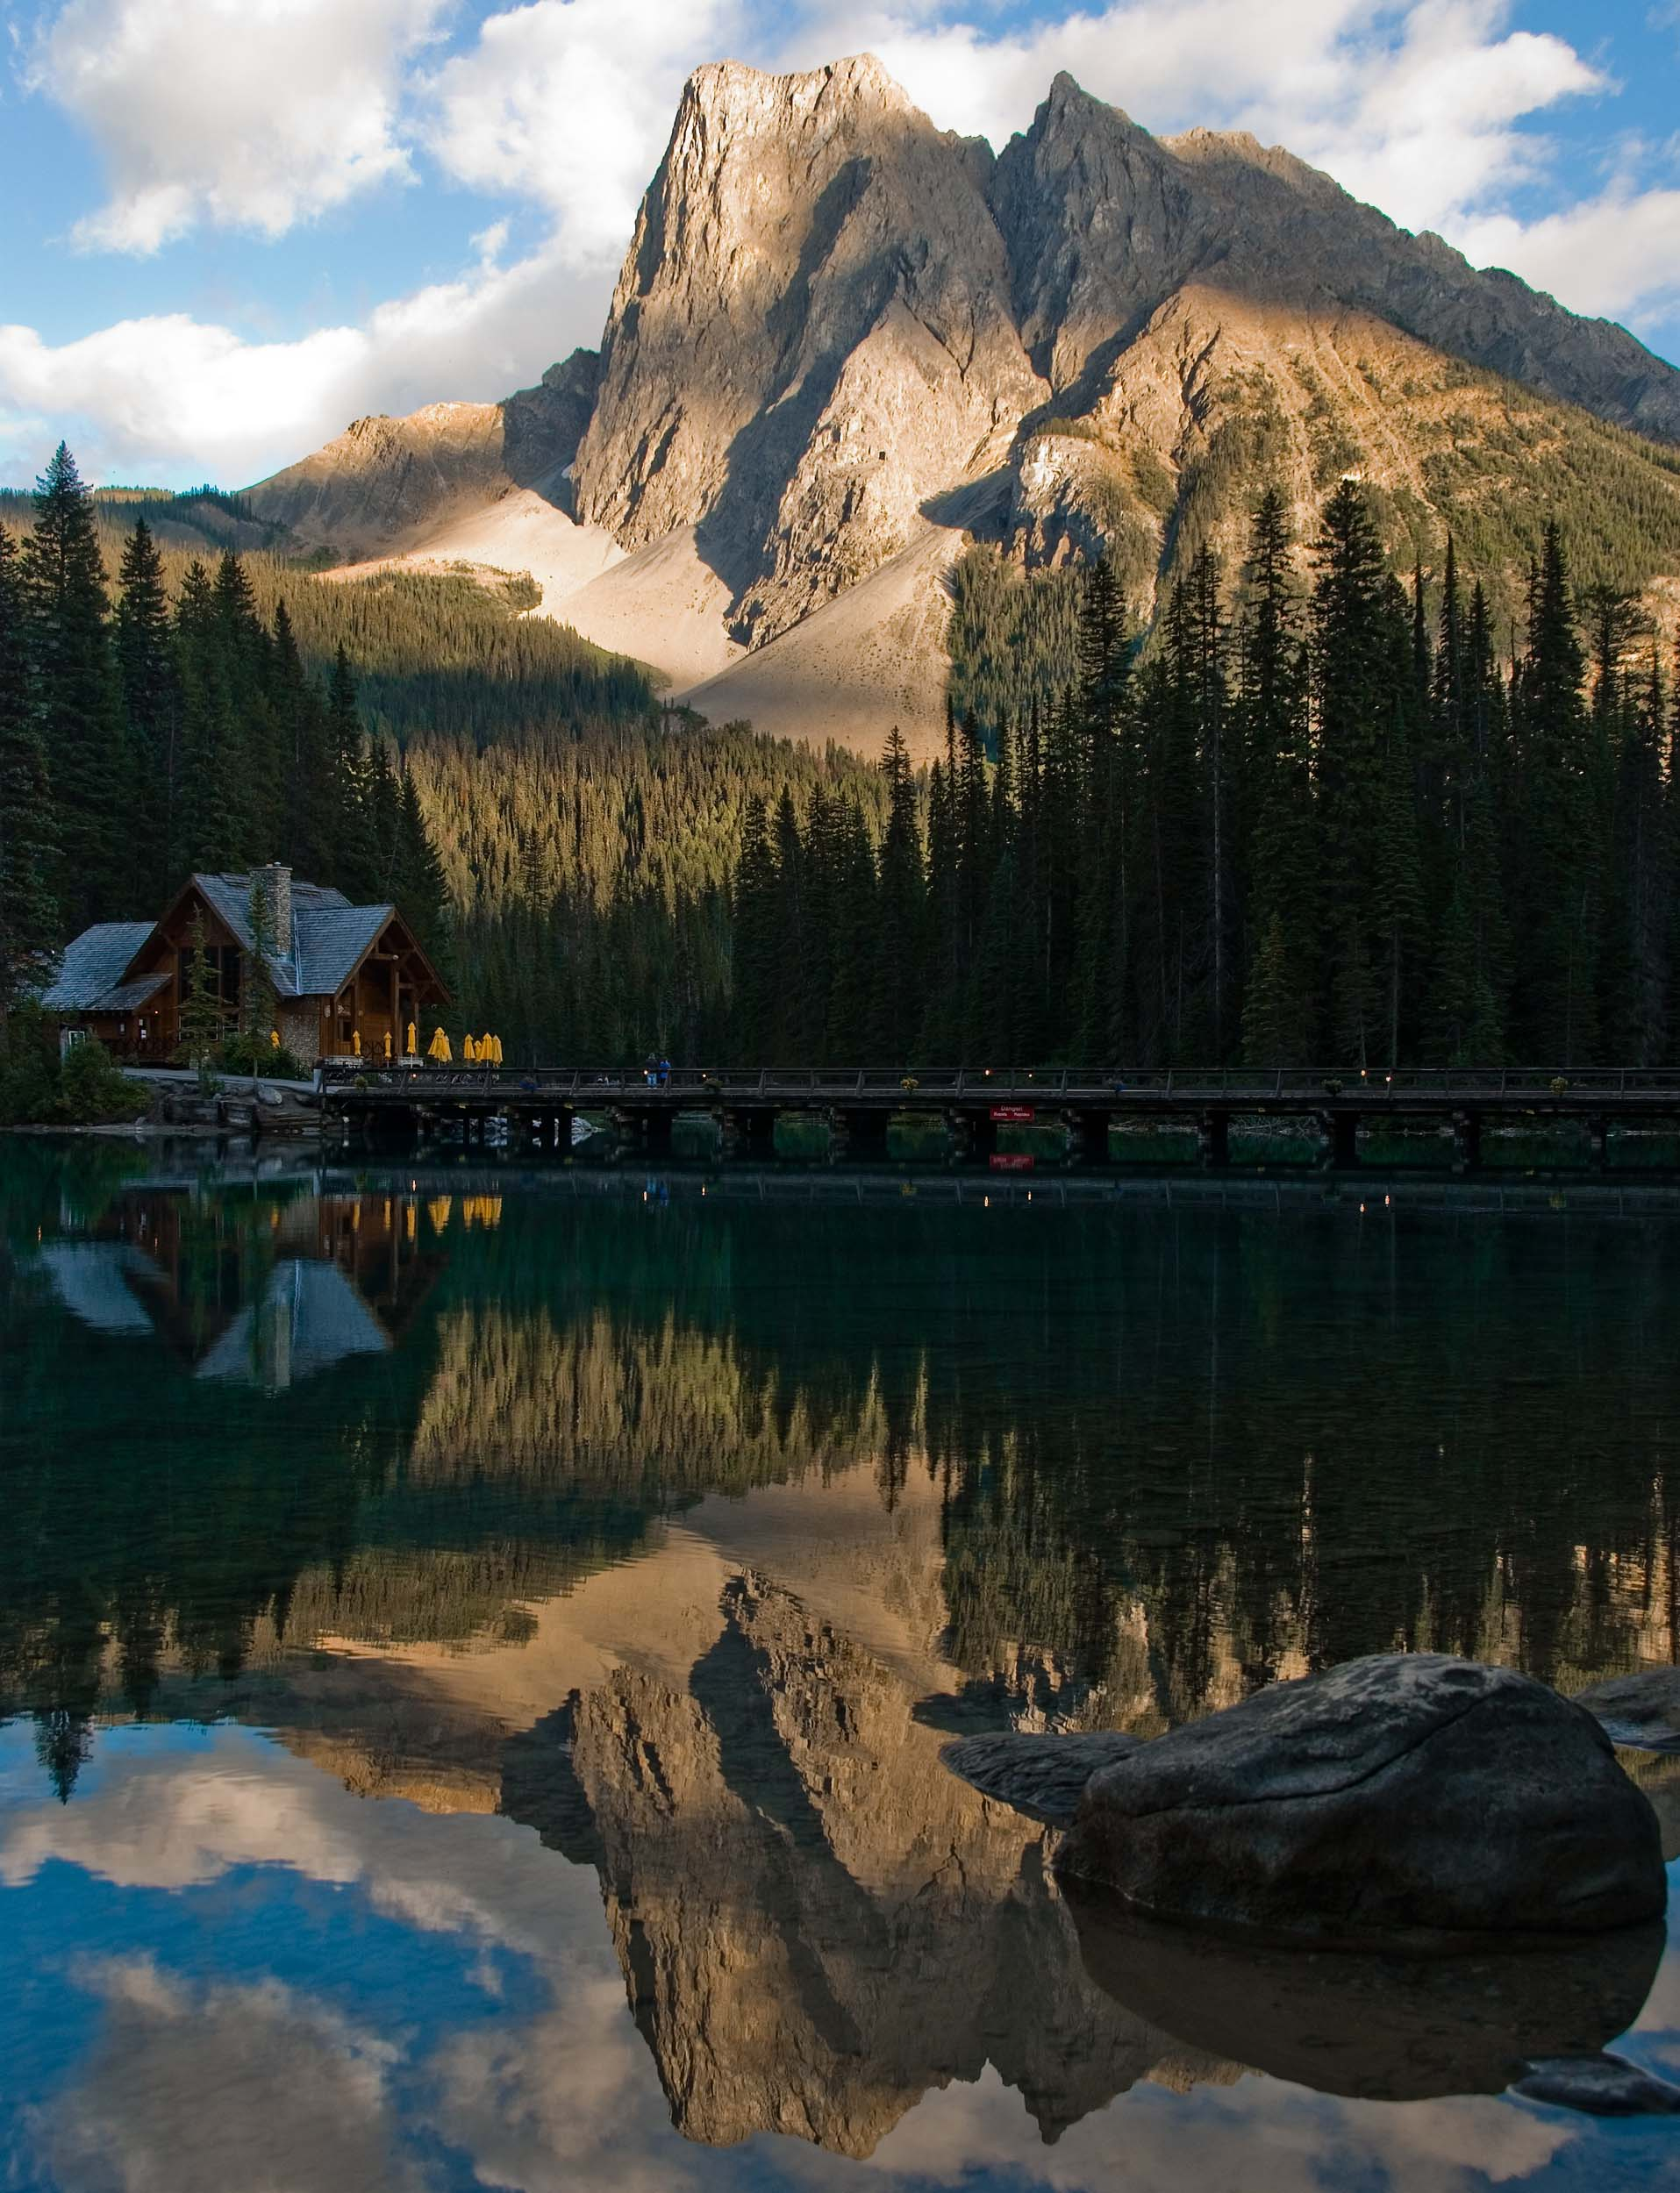 Emerald Lake, BC (inside Yoho National Park)is one of the most magical places in all of Canada. As part of Canada 150, here is the second photo (third in the series) of Emerald Lake.